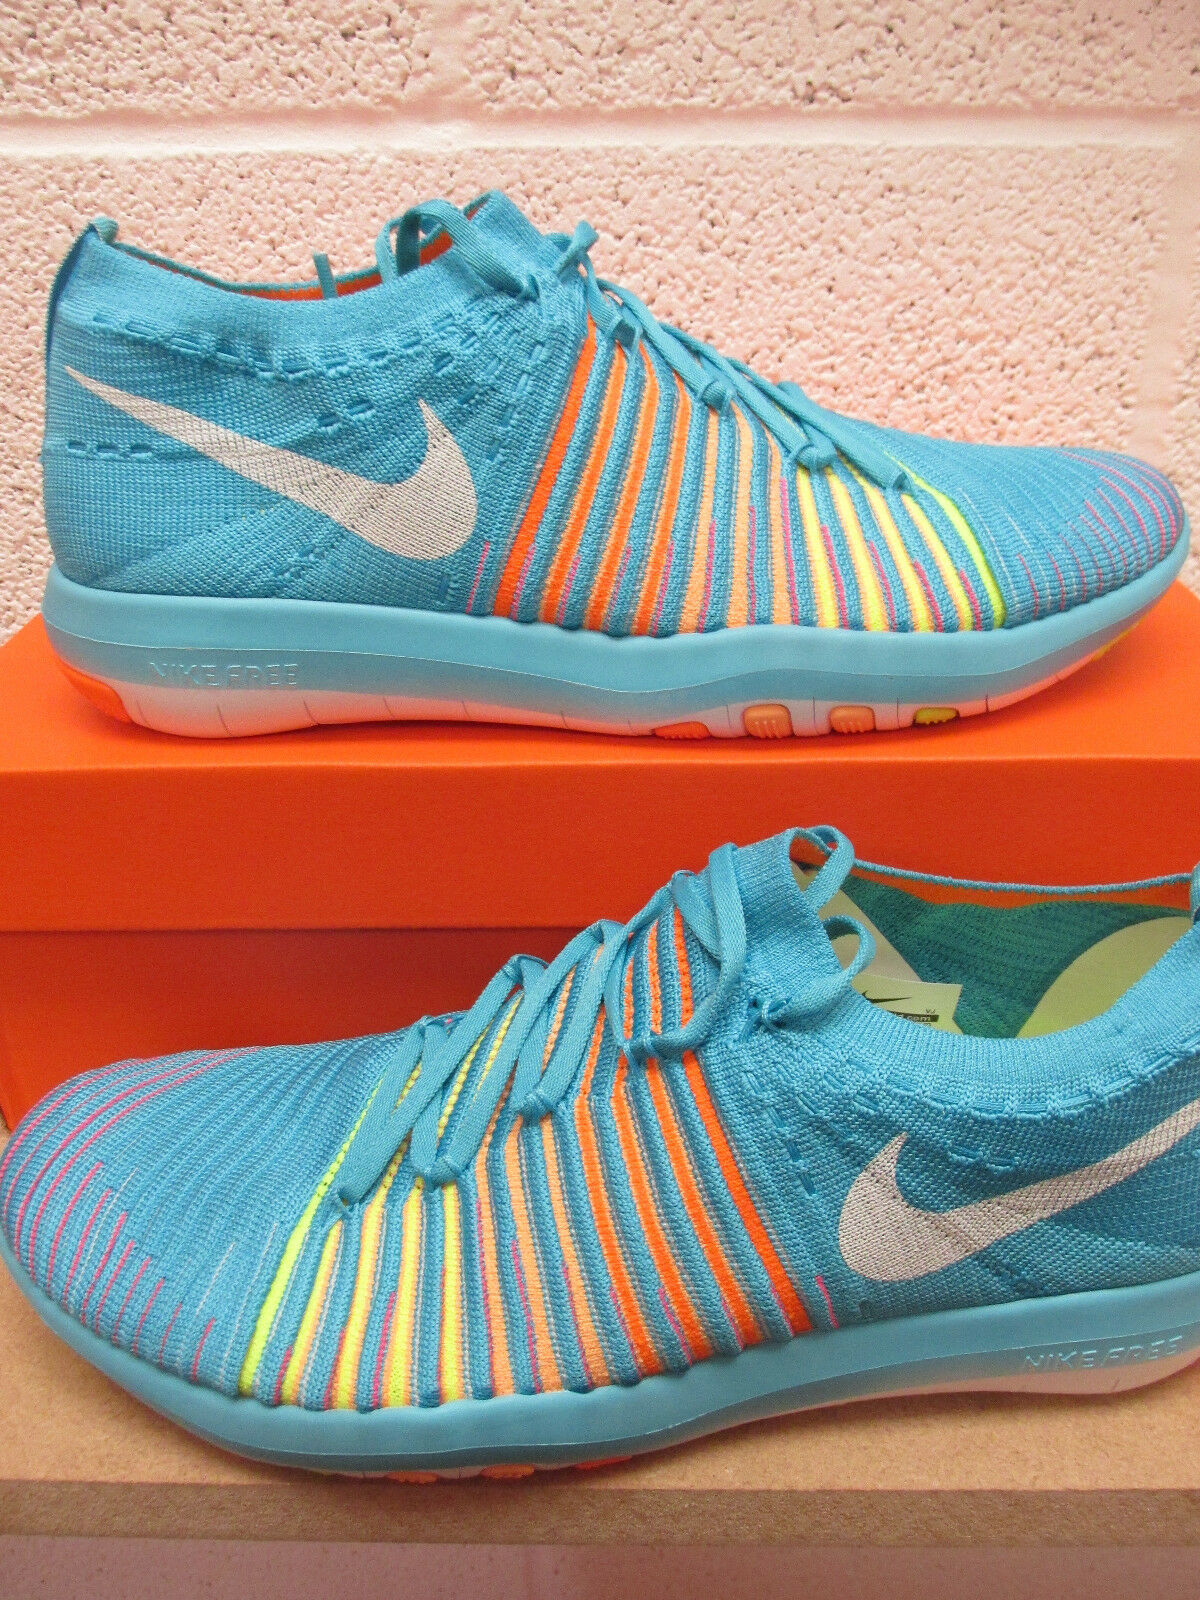 Nike Free Transform Flyknit femmes Running Chaussures Trainers 833410 400 Baskets Chaussures Running 4e11a7